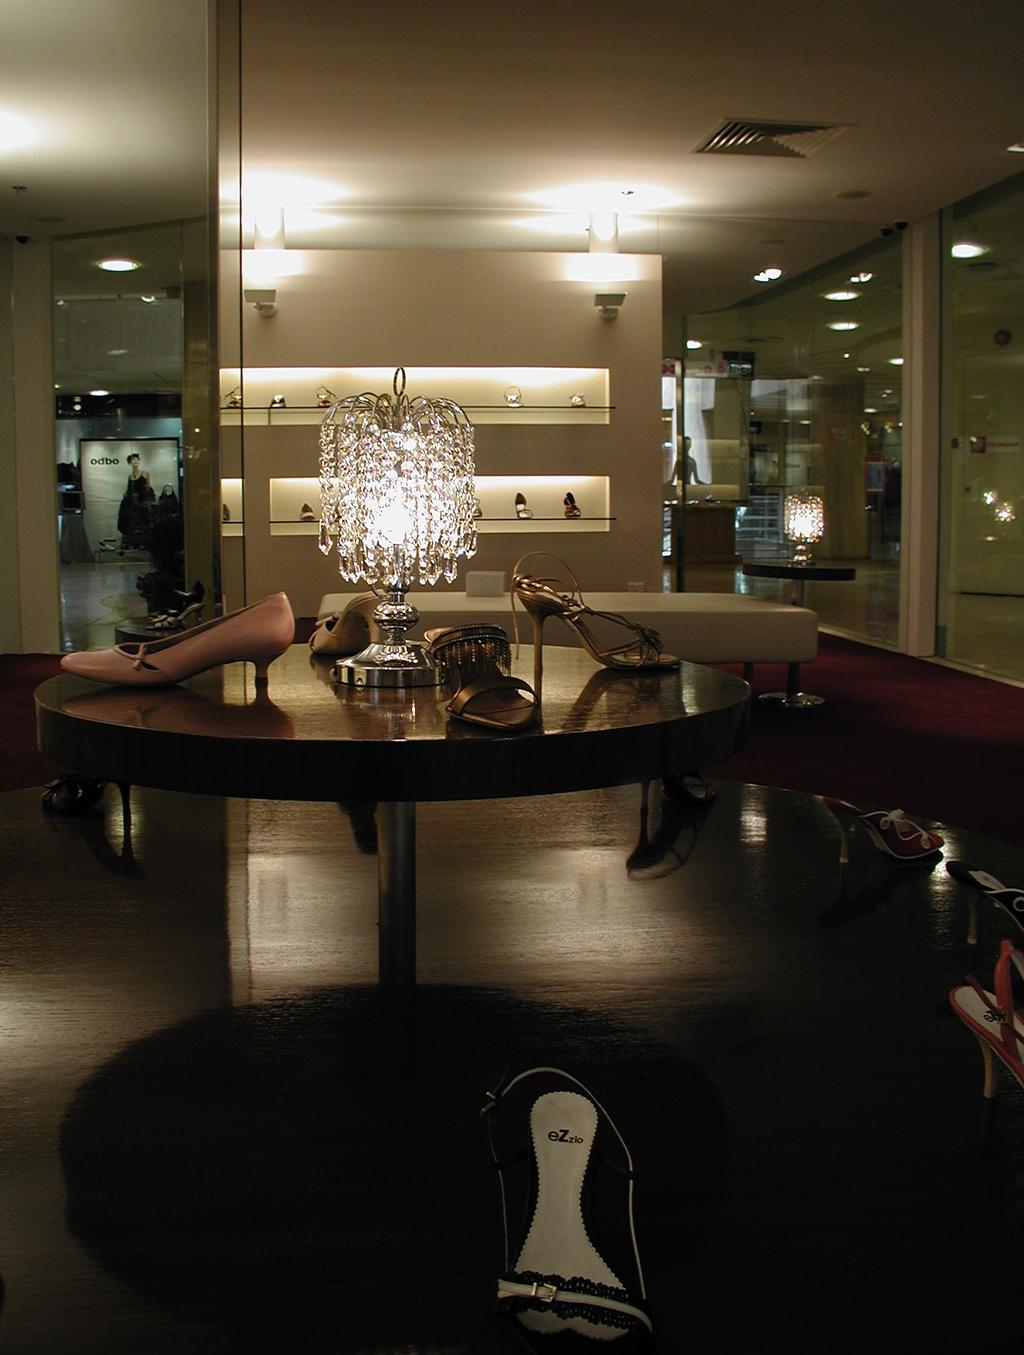 Lulu, Commercial, Architect, Wallflower Architecture + Design, Traditional, Chandelier, Lamp, Dining Table, Furniture, Table, Dining Room, Indoors, Interior Design, Room